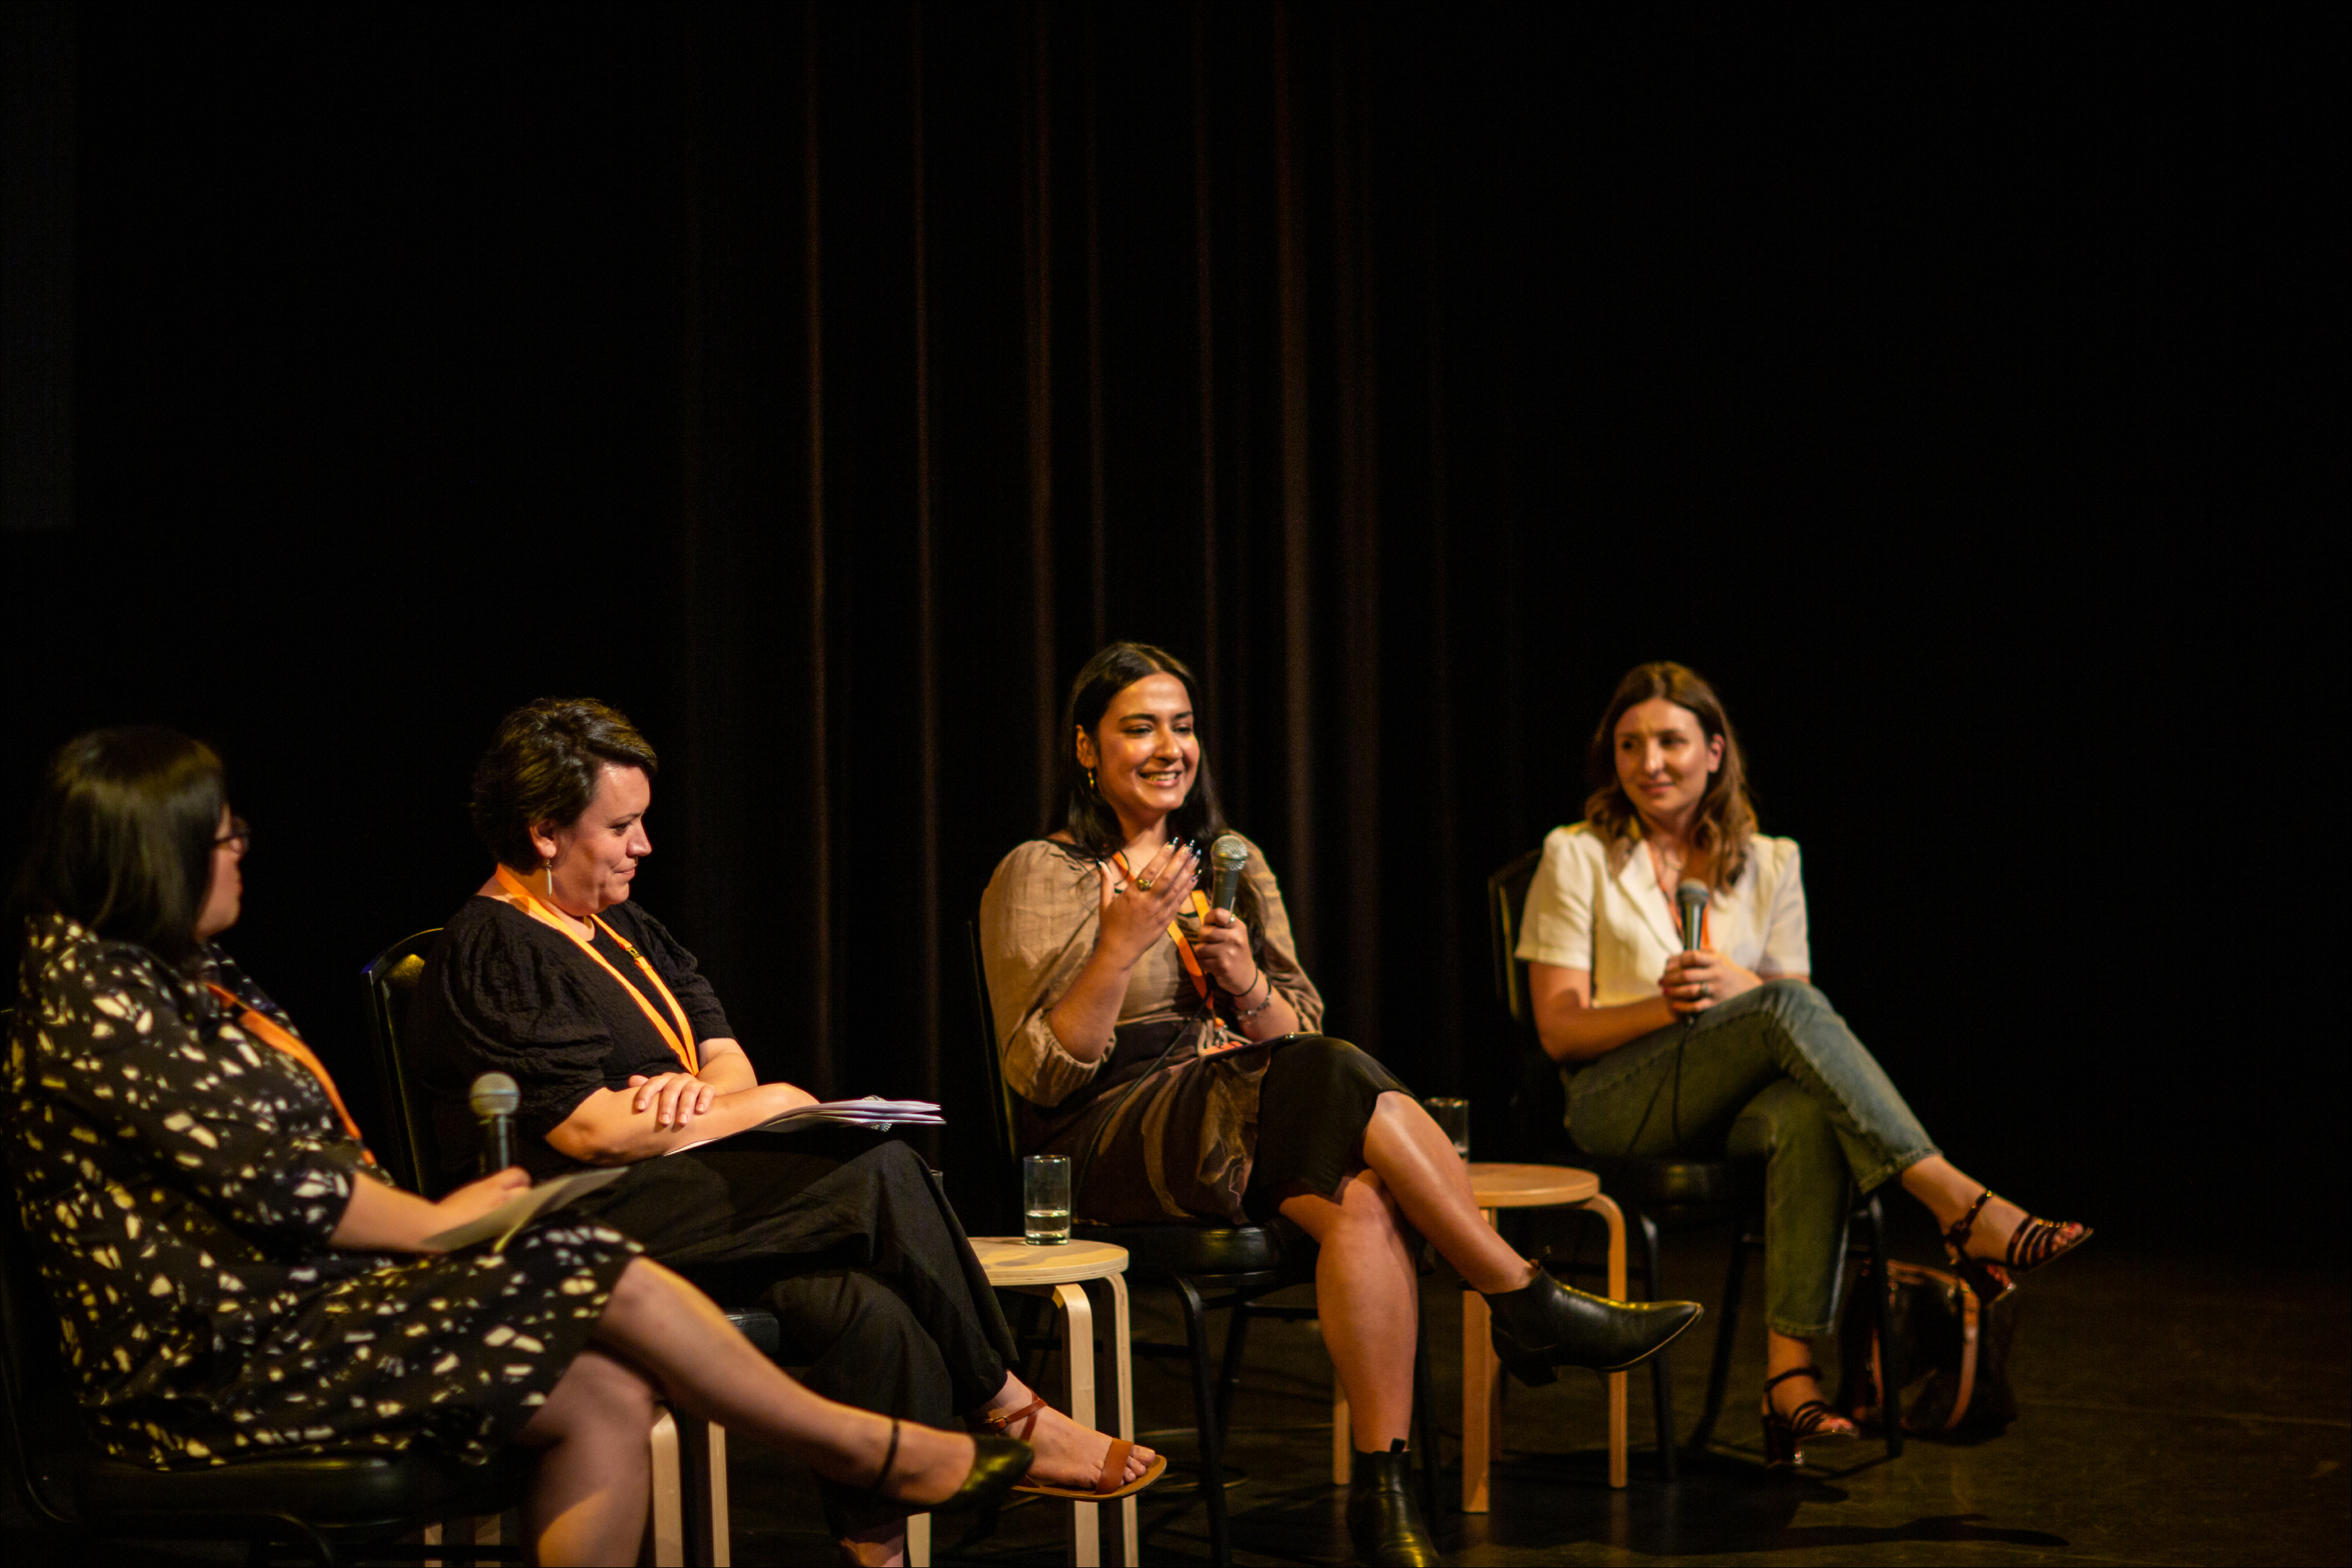 Sheila Pham, Kiriaki Koubaroulis, Audrey Newton and Sarah Ayoub in Bankstown Art Centre's panel Mother Tongues